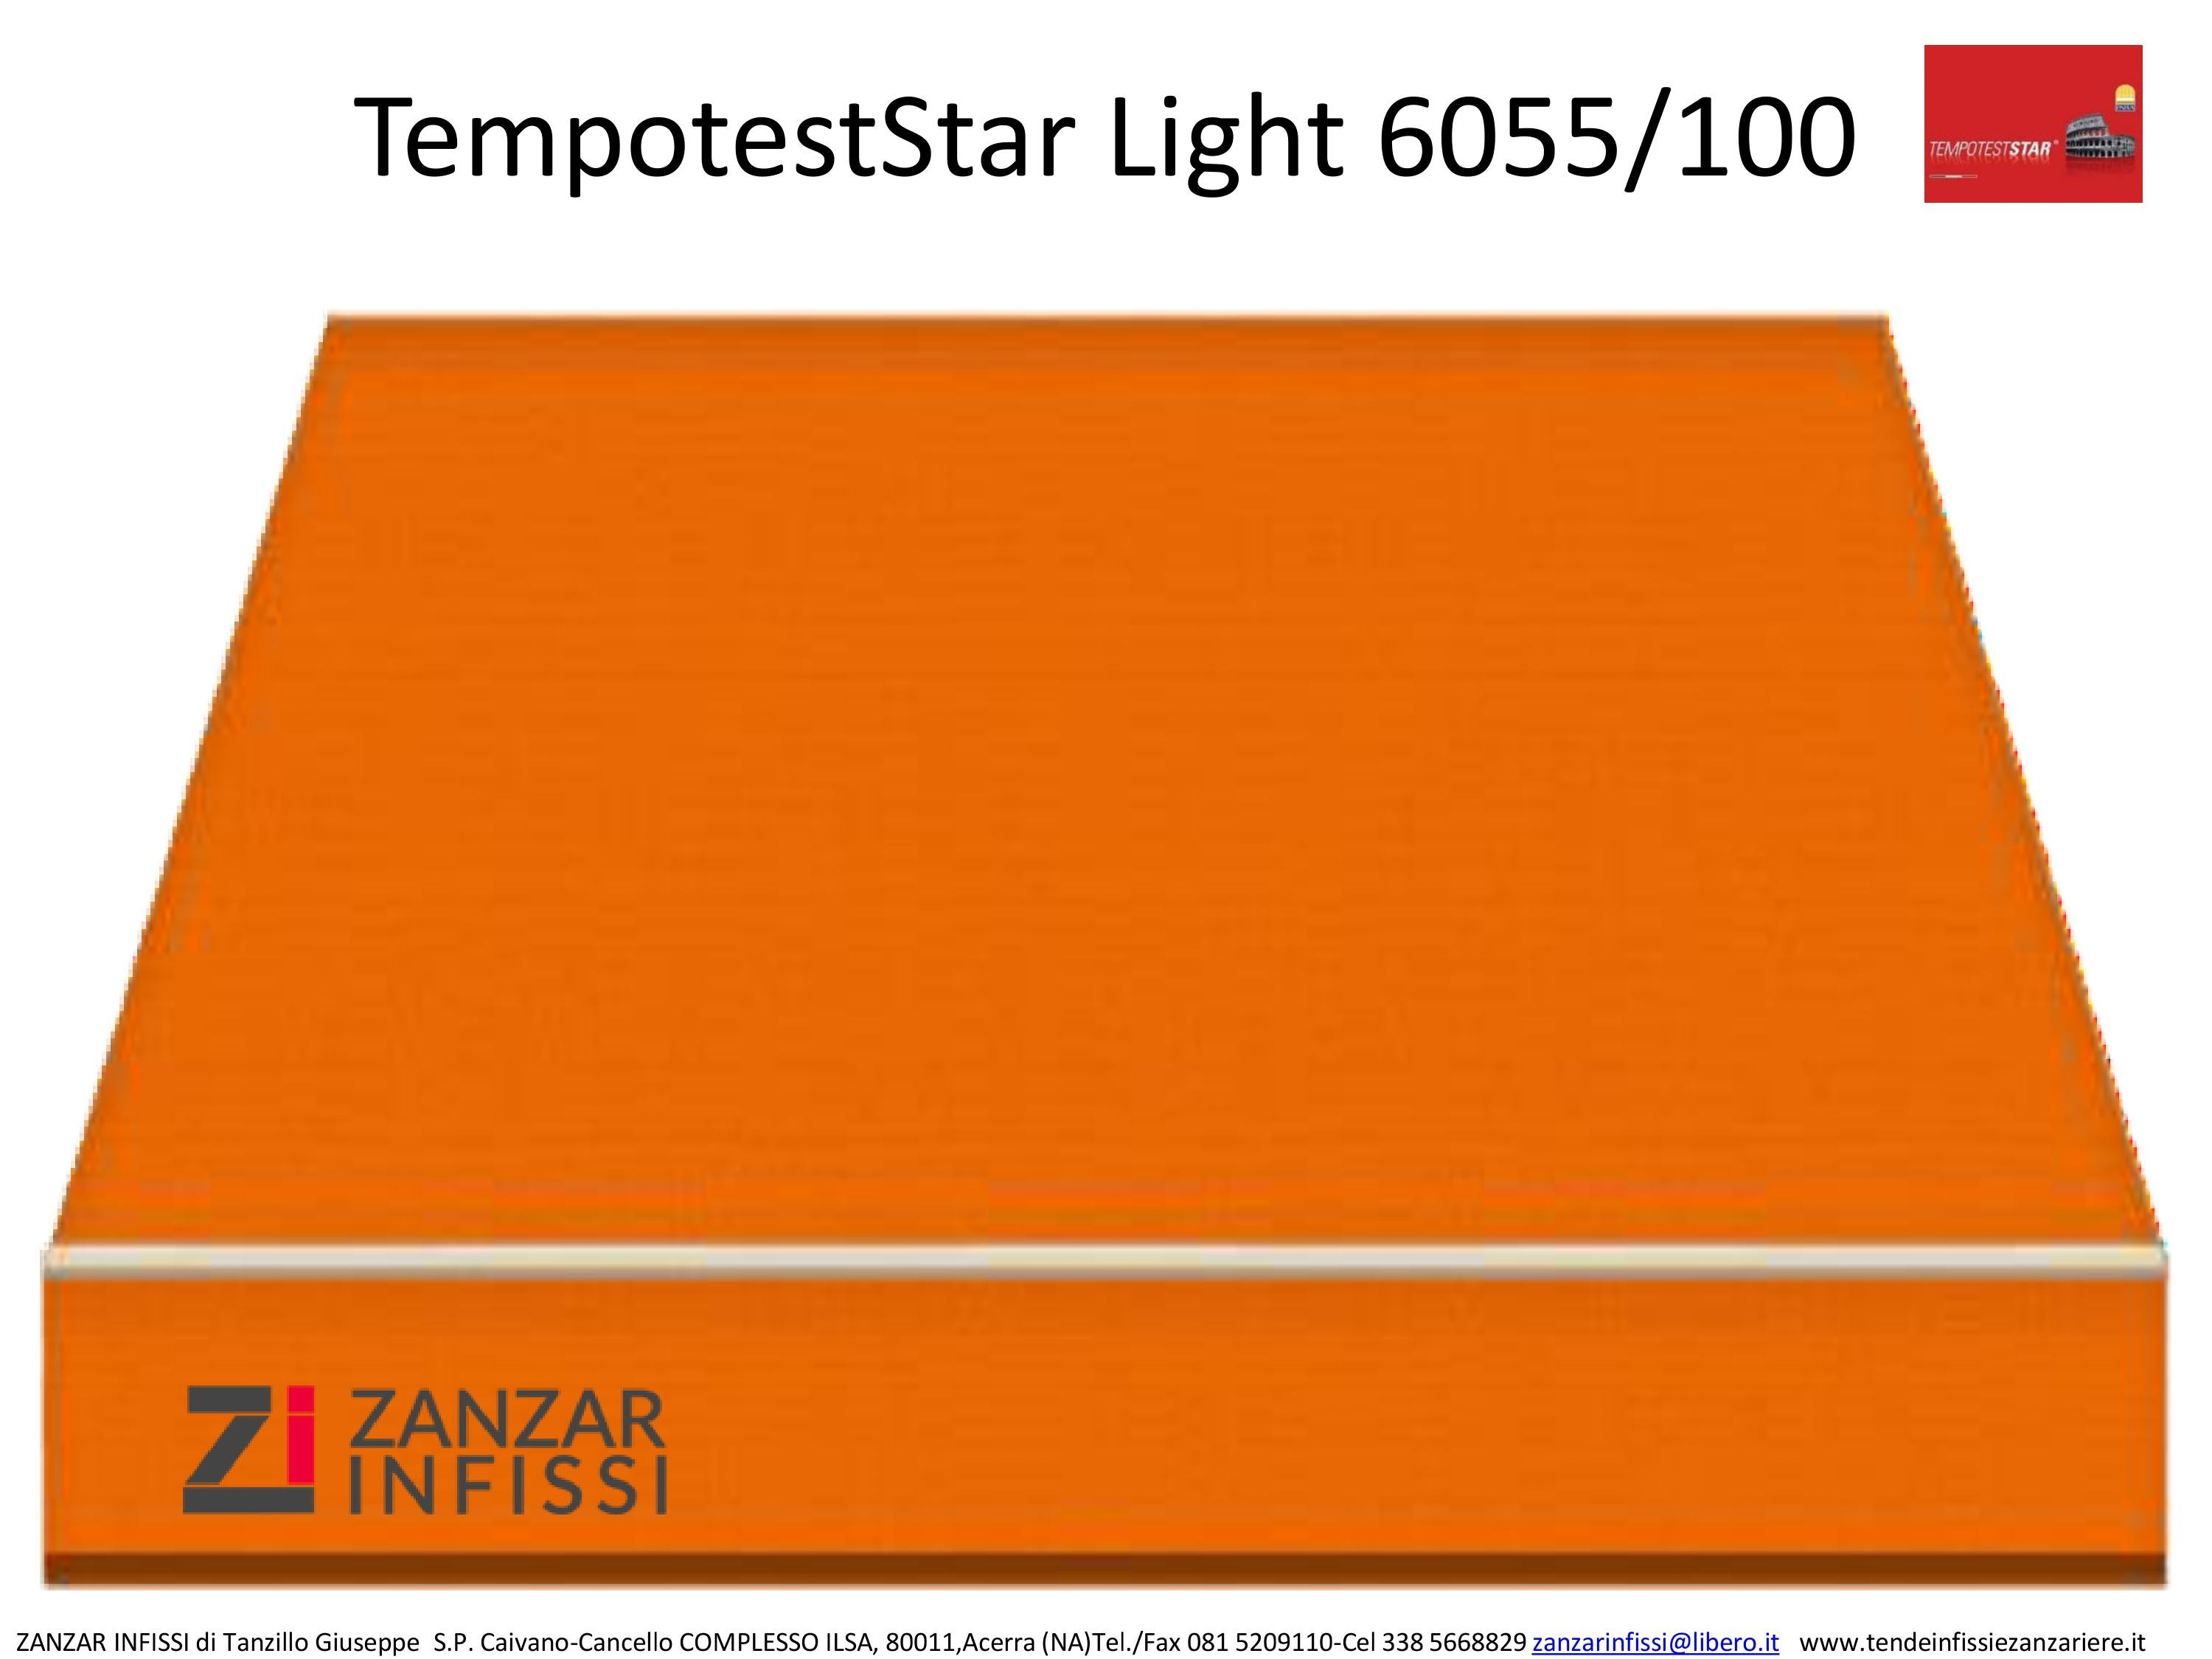 Tempotest star light 6055/100